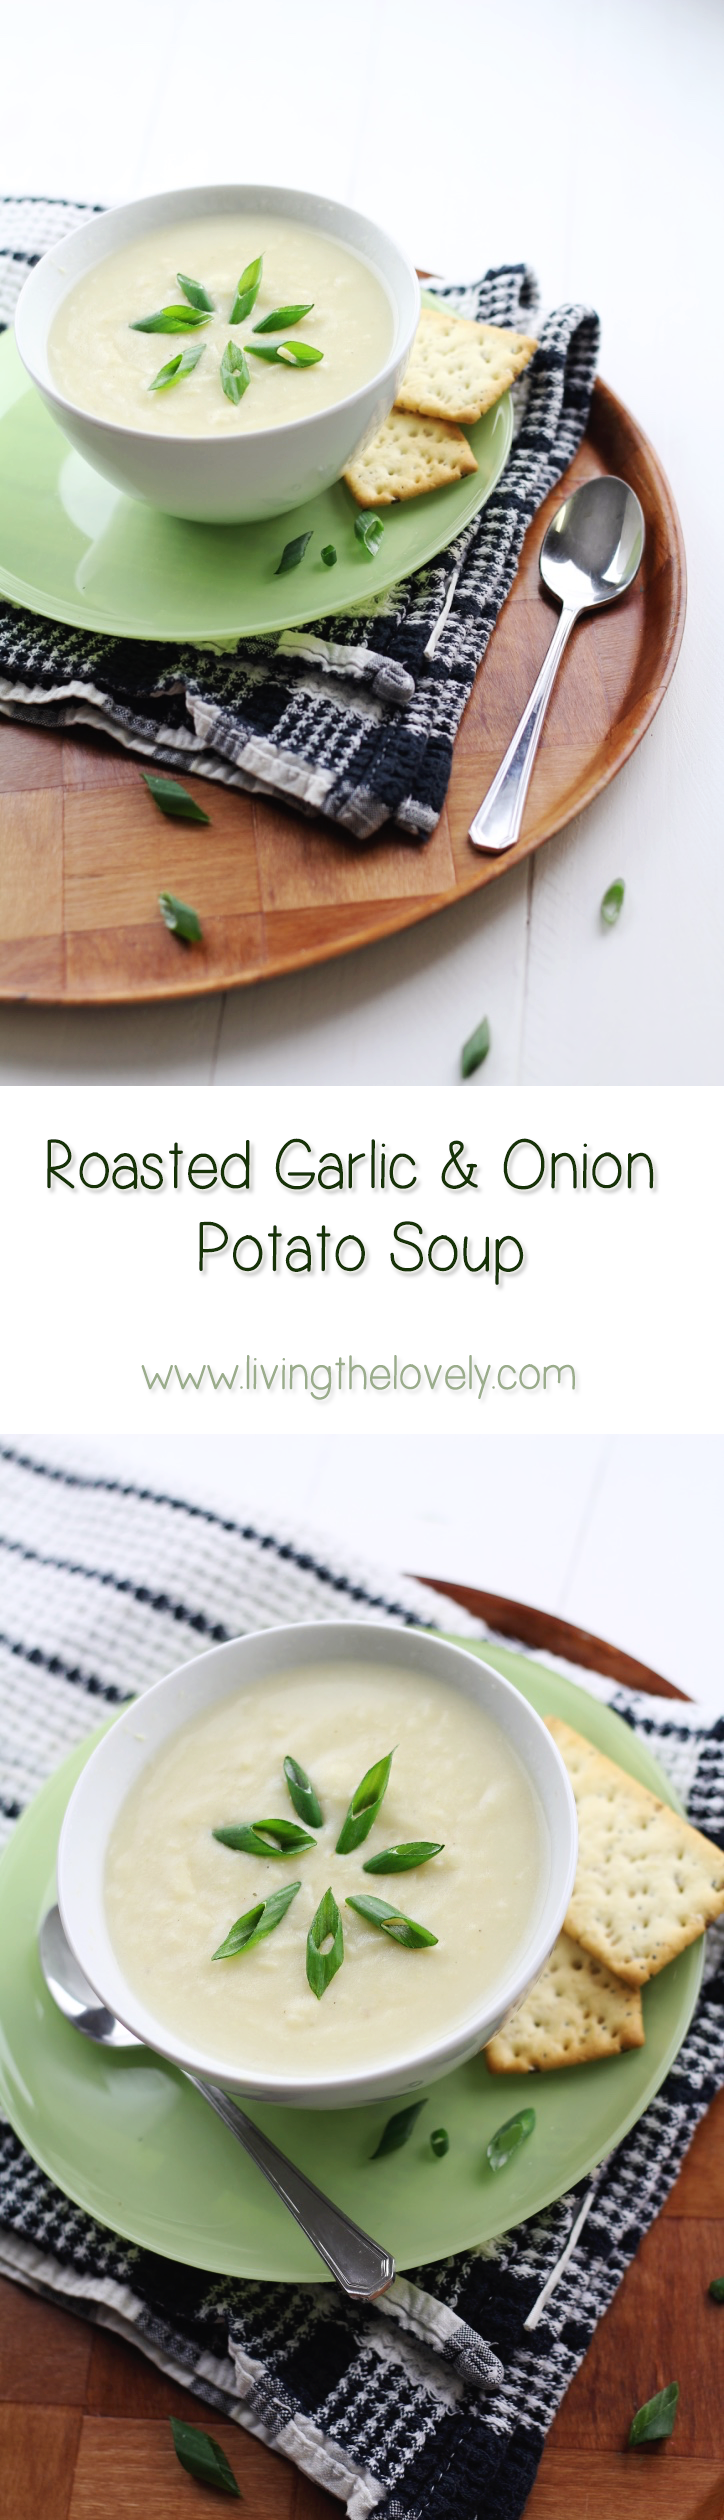 This recipe is a quick and easy soup to make that is great to prevent colds and flus! Packed with Garlic and Onions and very yummy!